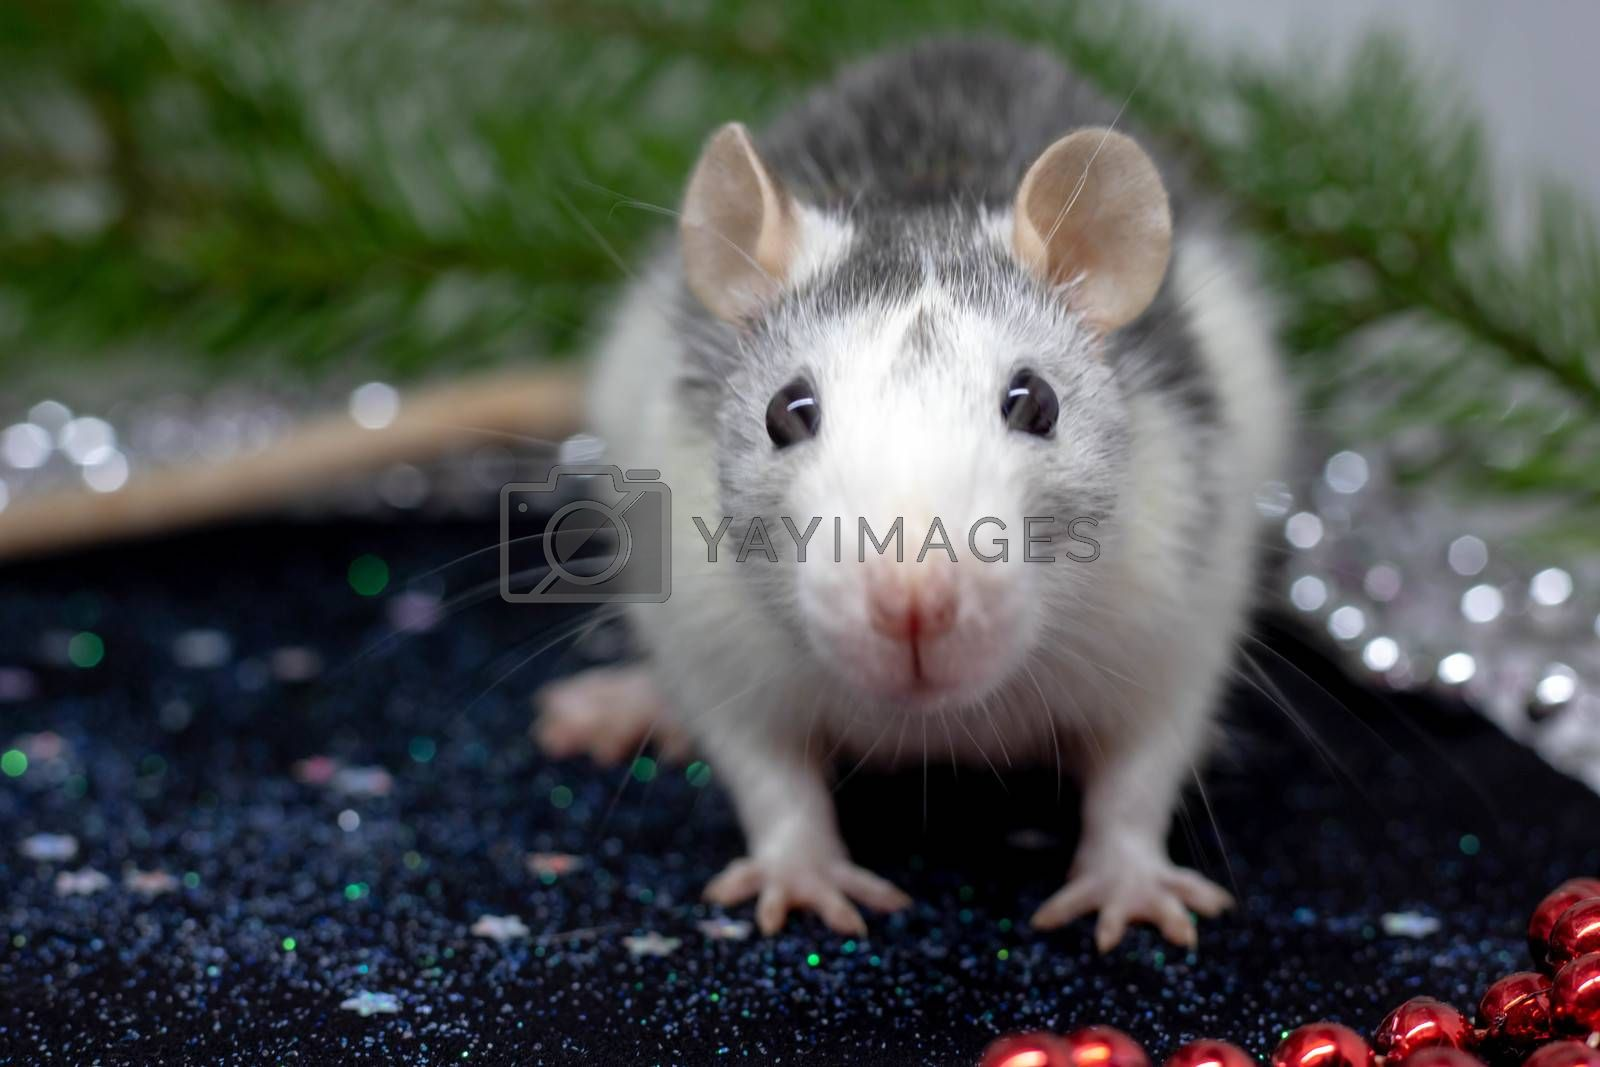 A close-up of a rat peeking out of its hiding place, a symbol of the 2020 Concept.Chinese horoscope